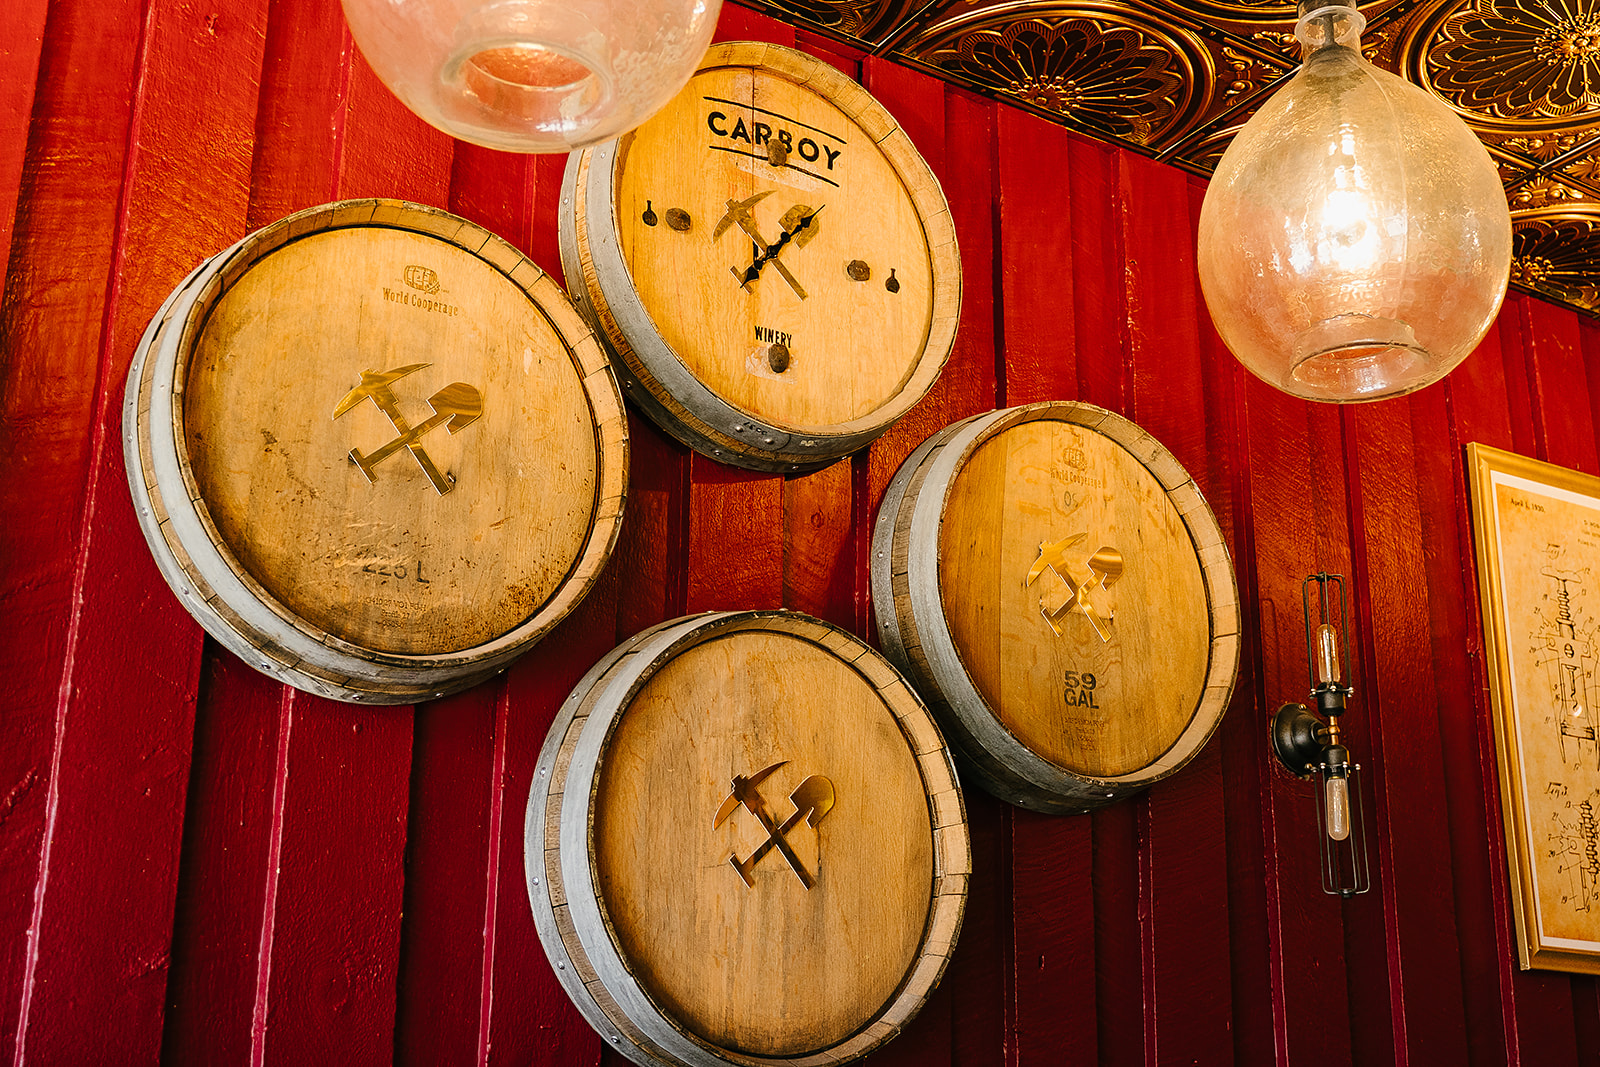 Carboy wine barrels stacked on a red wall.